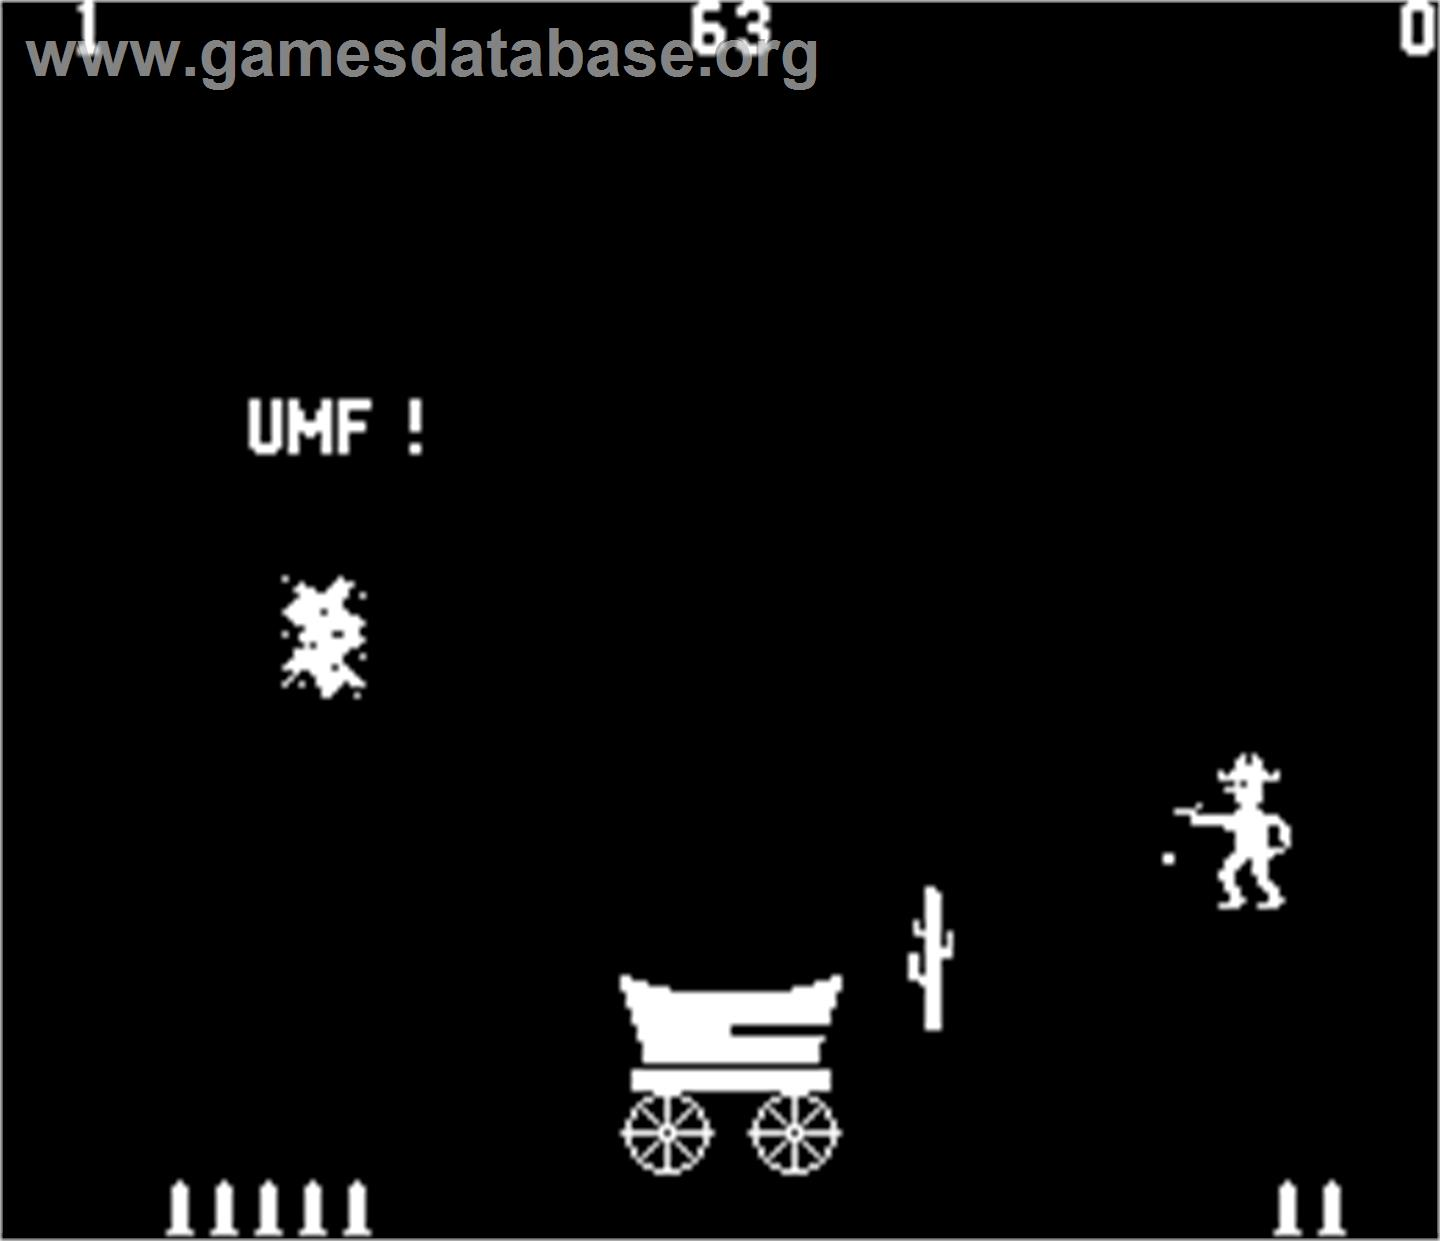 Boot_Hill_-_1977_-_Midway_Games.jpg